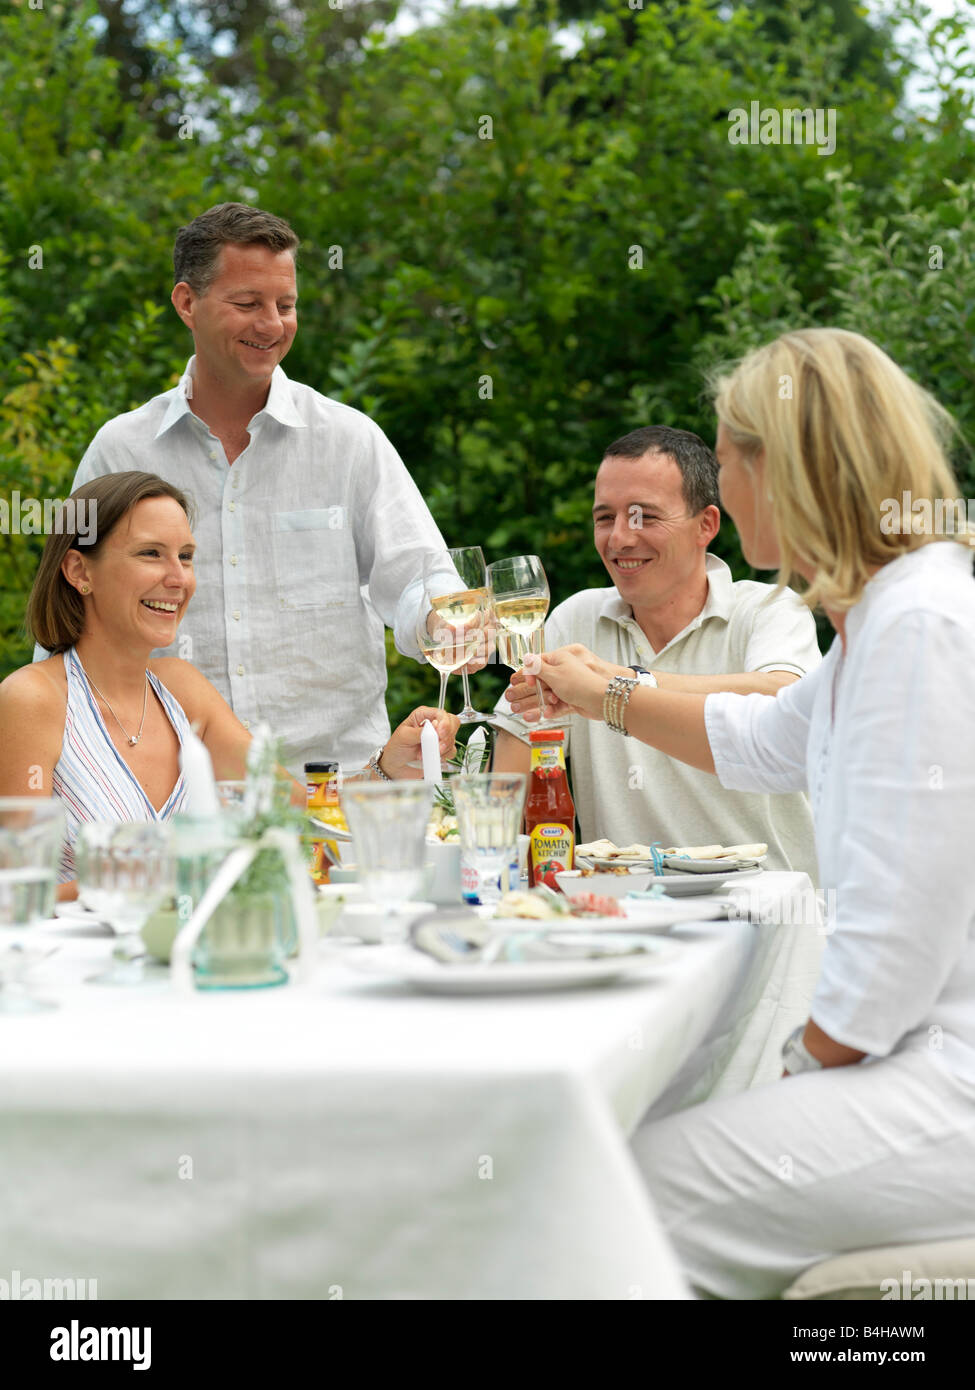 Two couples toasting with wine glasses at a garden party - Stock Image